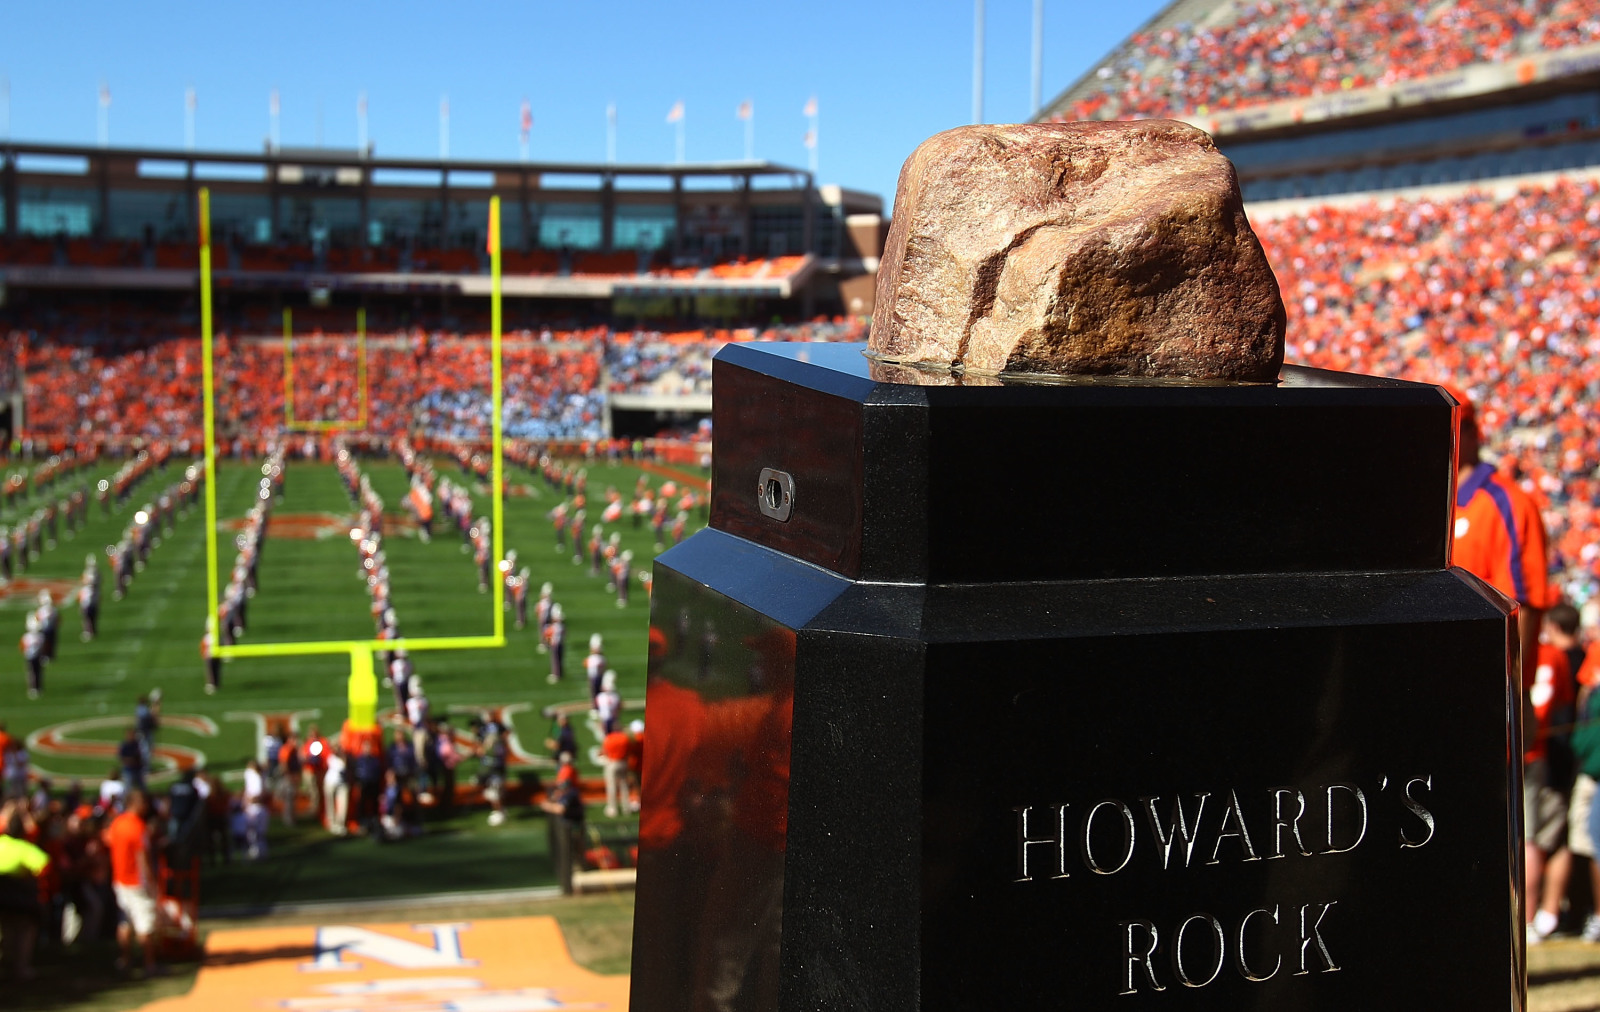 Clemson Football Howard S Rock Was Almost Thrown Away When clemson players rub that rock and run down the hill, its the most exciting 25 seconds in college football. https rubbingtherock com 2020 03 19 clemson football remember howards rock almost thrown